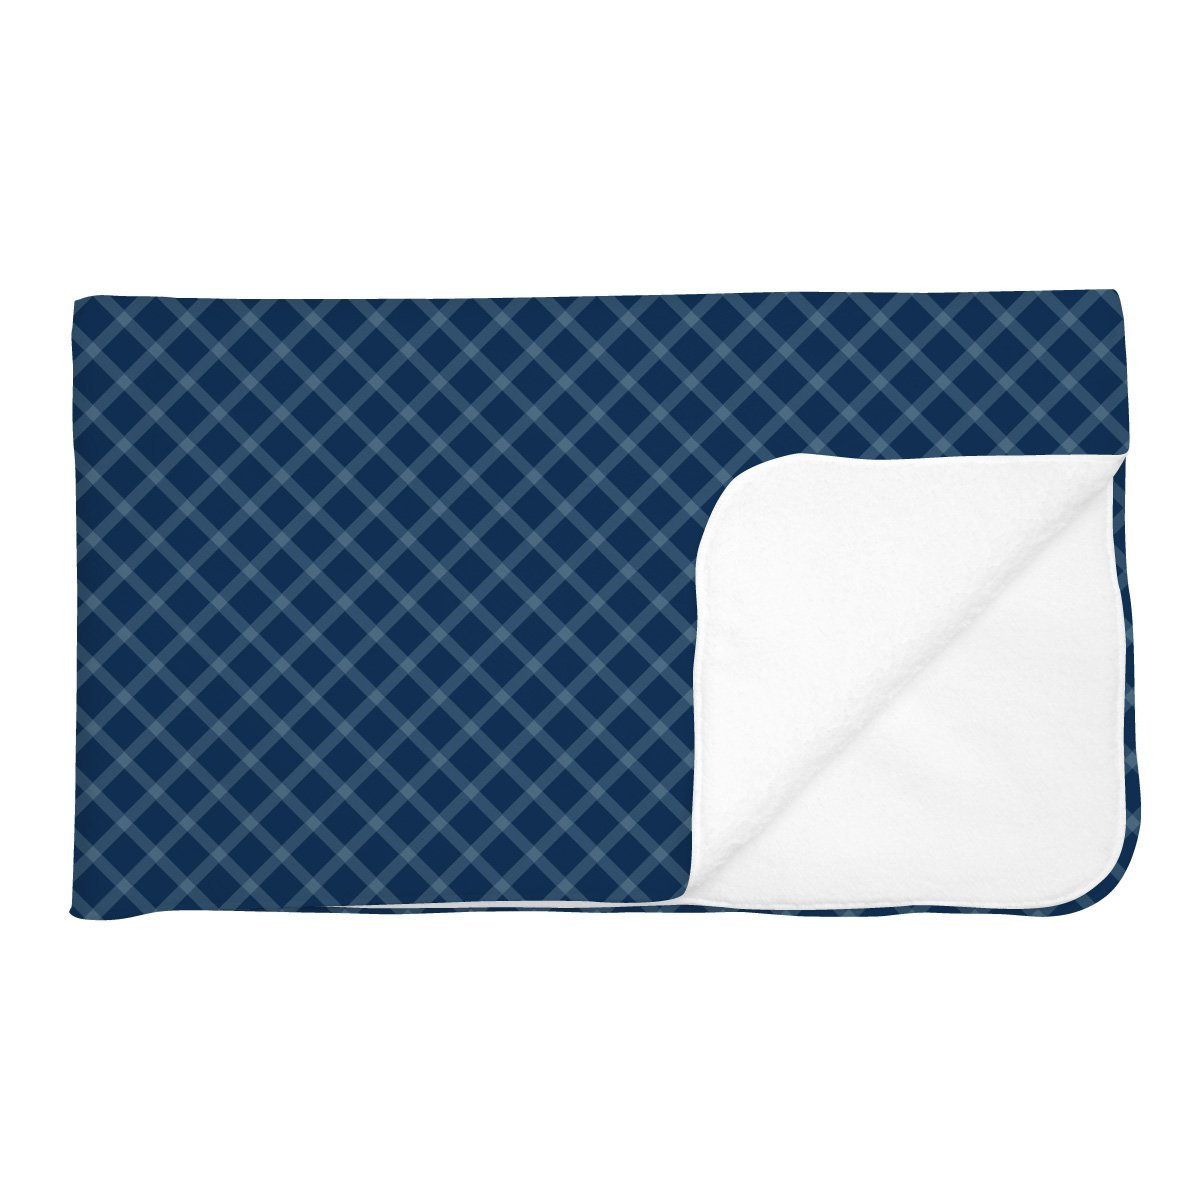 Jay's Mini Check | Adult Size Blanket